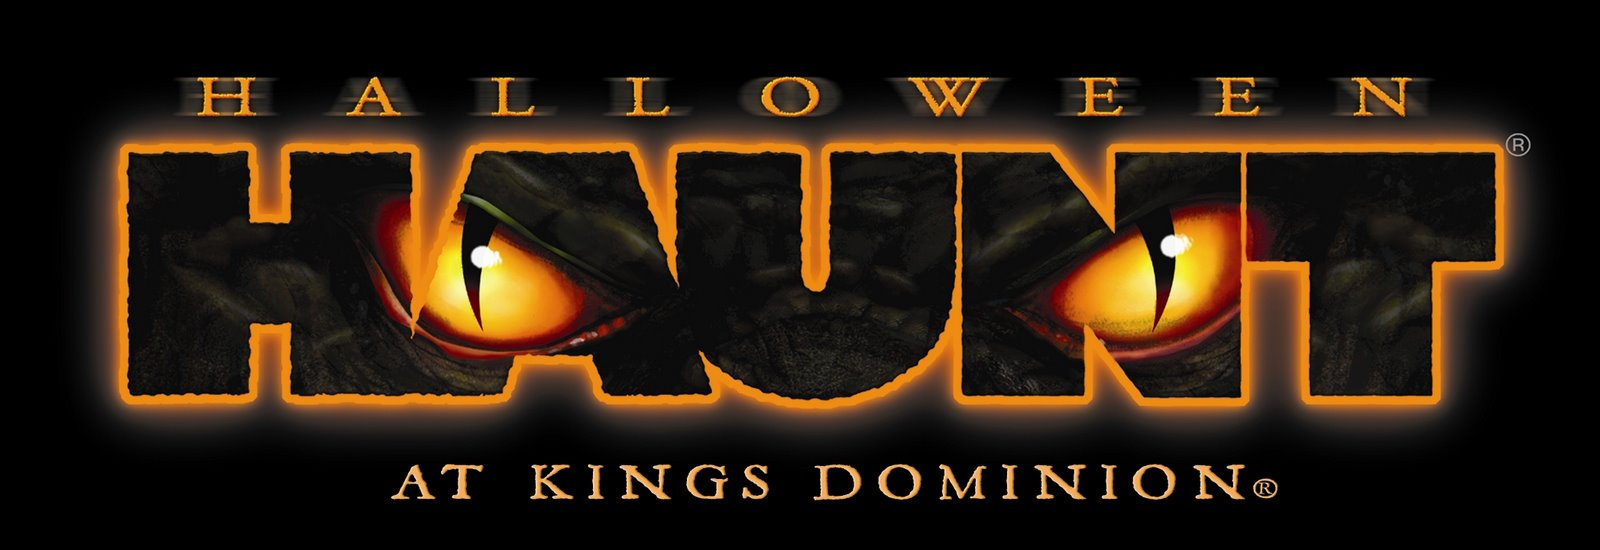 DOSWELL, Va. — Kings Dominion's Halloween Haunt will return on Saturday, September 22 with three gruesome new experiences to their lineup of mazes, scare zones and shows.